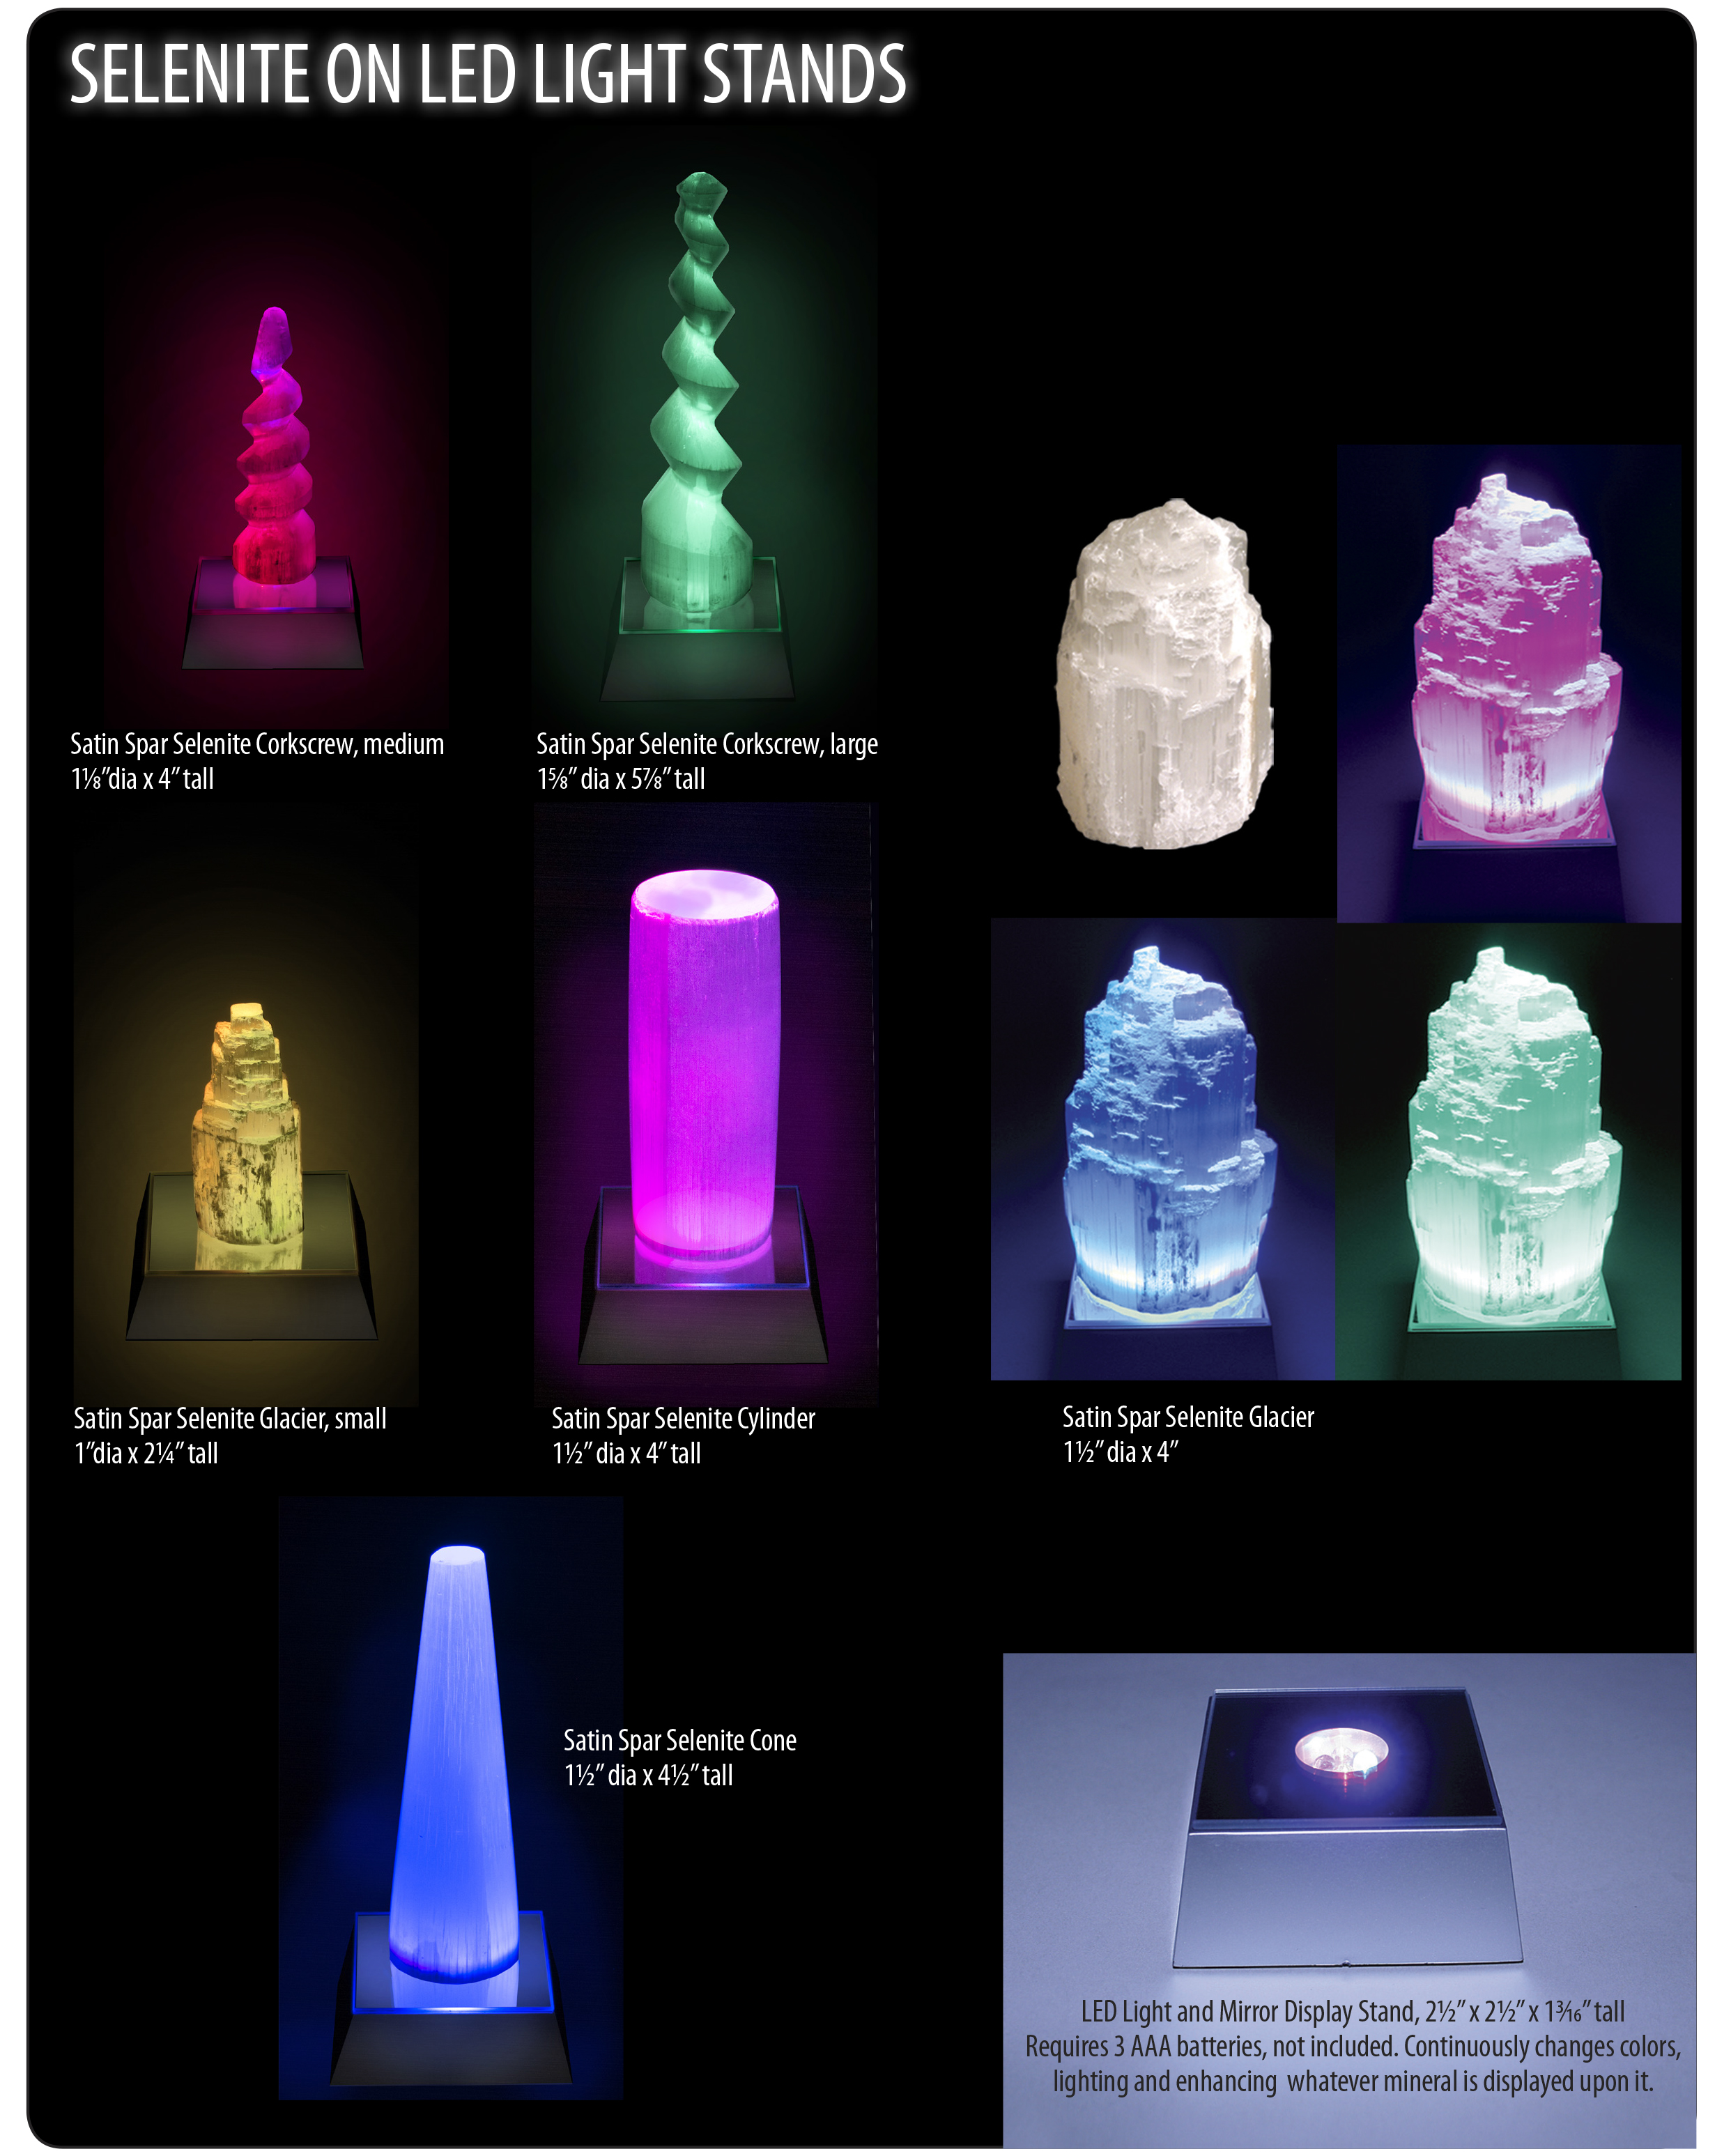 Selenite on LED Light Stands Ad